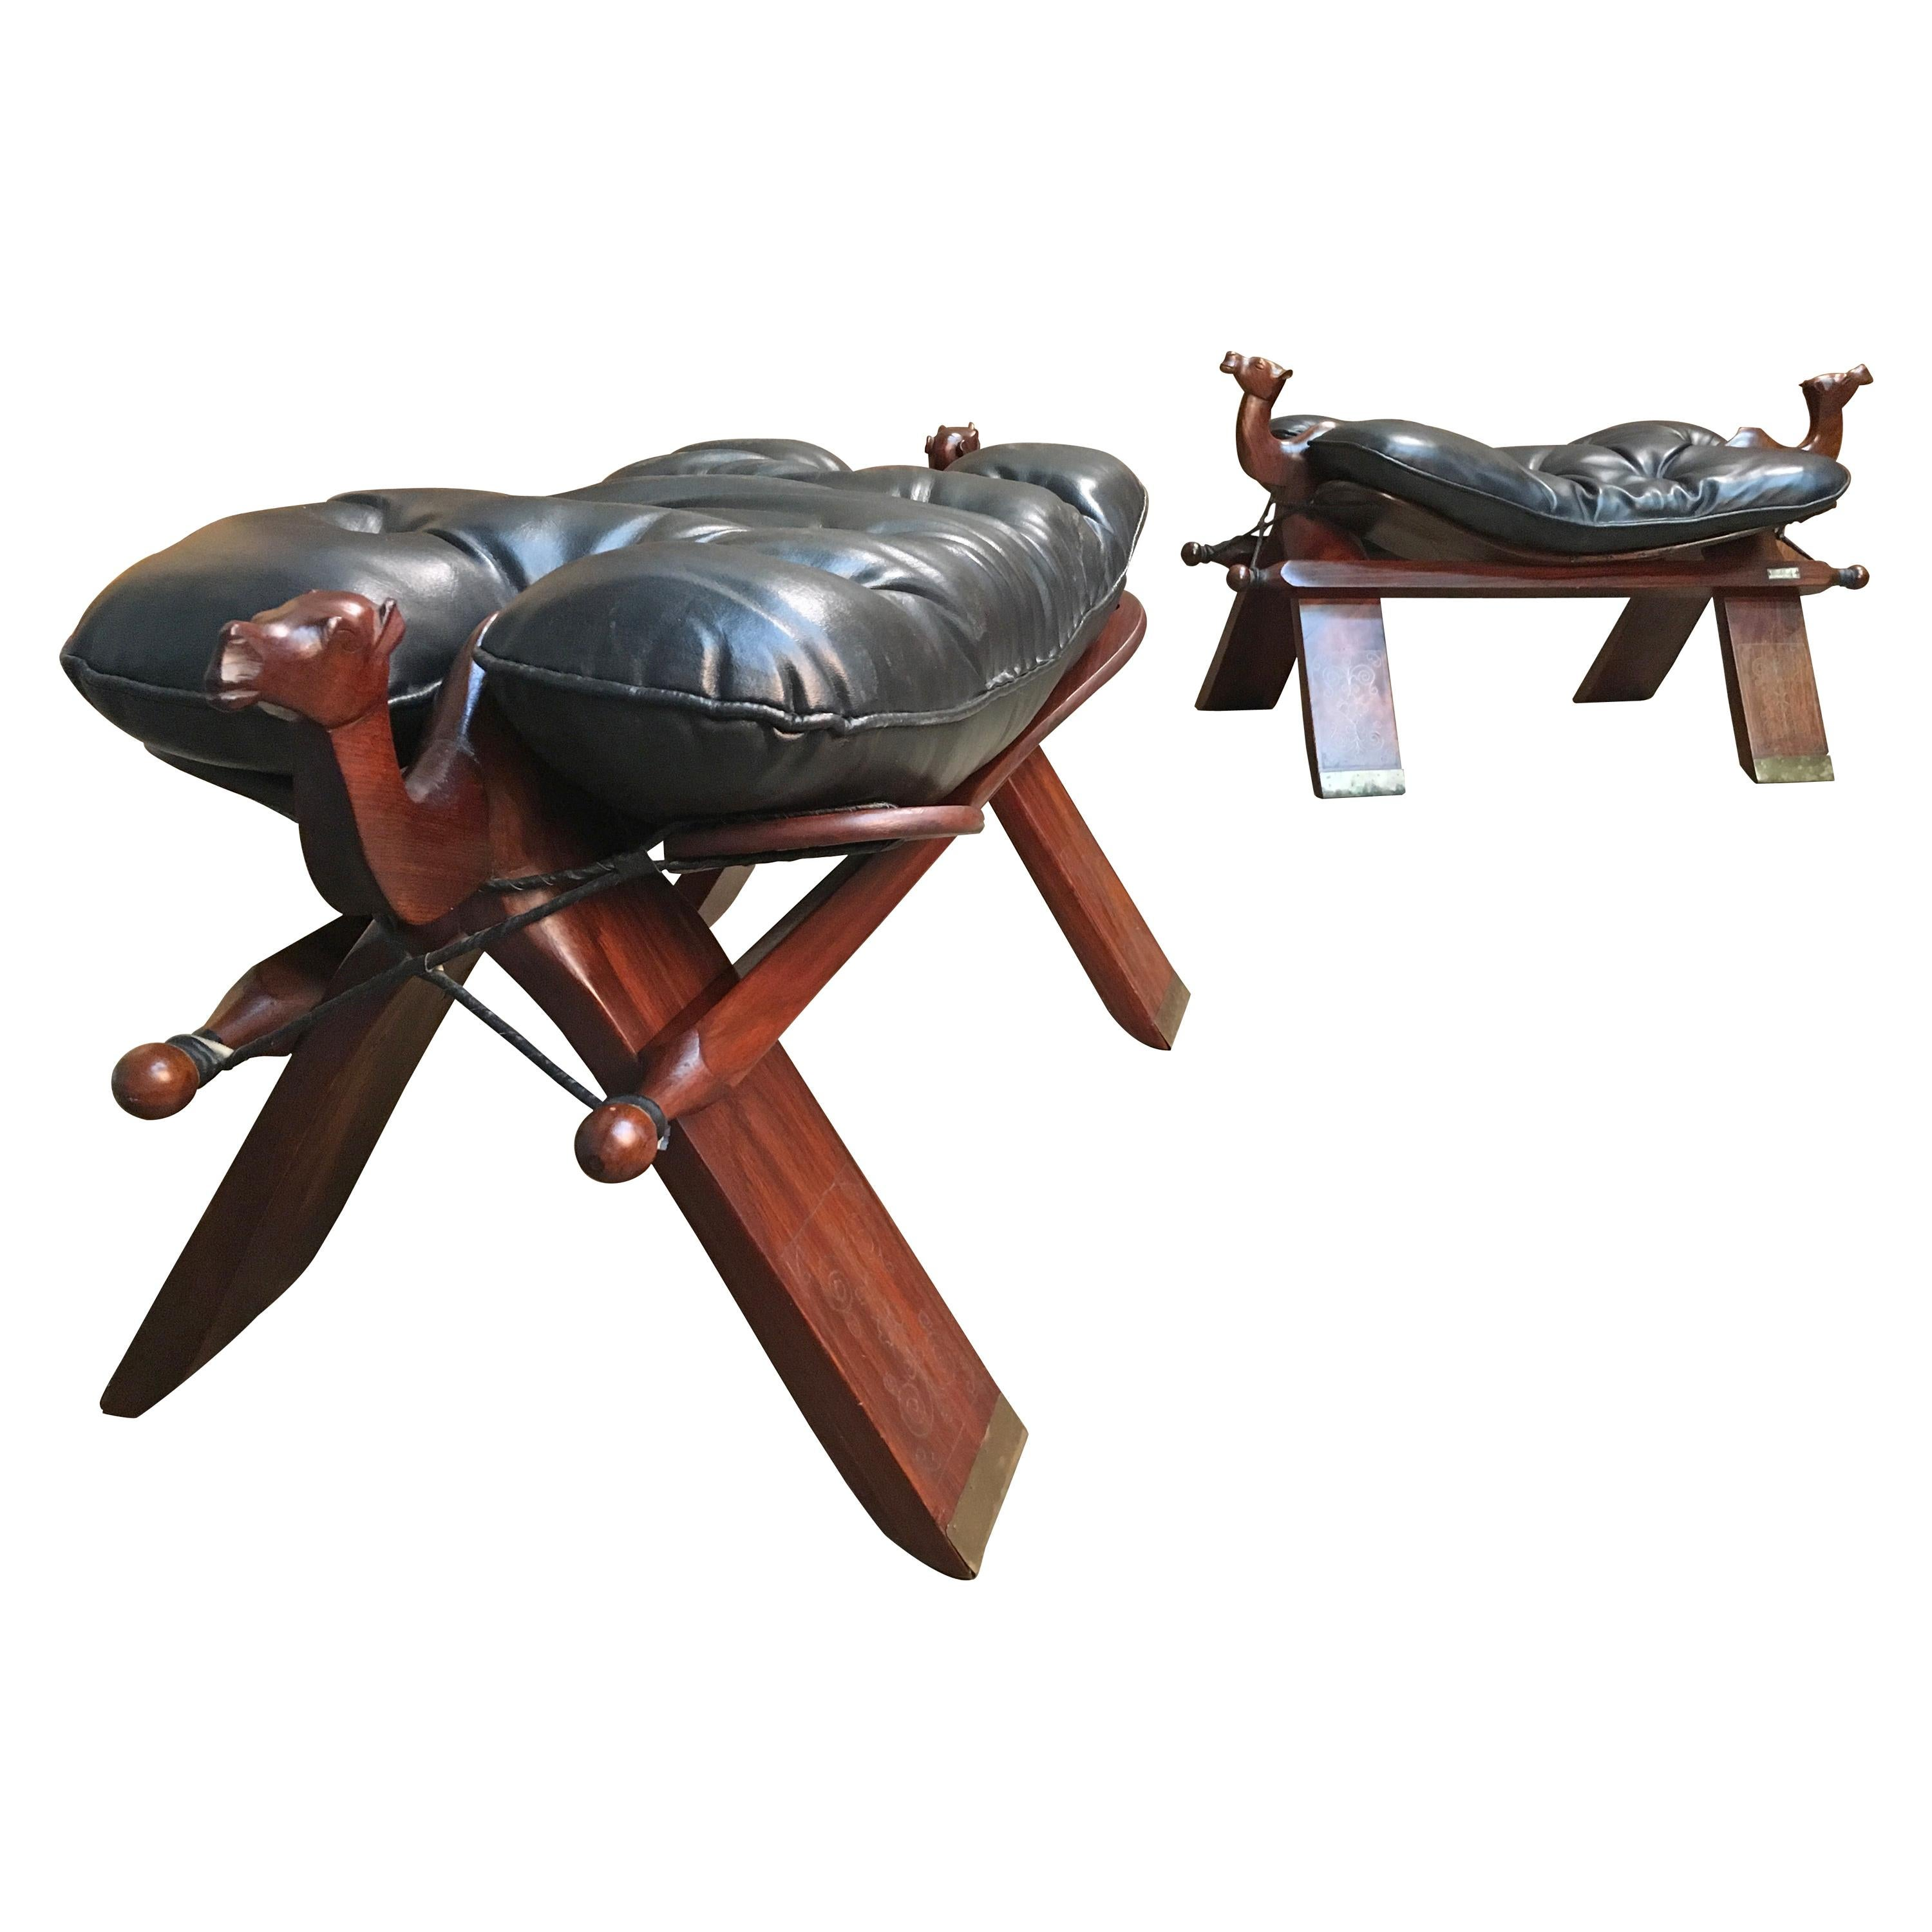 Astonishing Leather Foot Stools 44 For Sale On 1Stdibs Machost Co Dining Chair Design Ideas Machostcouk